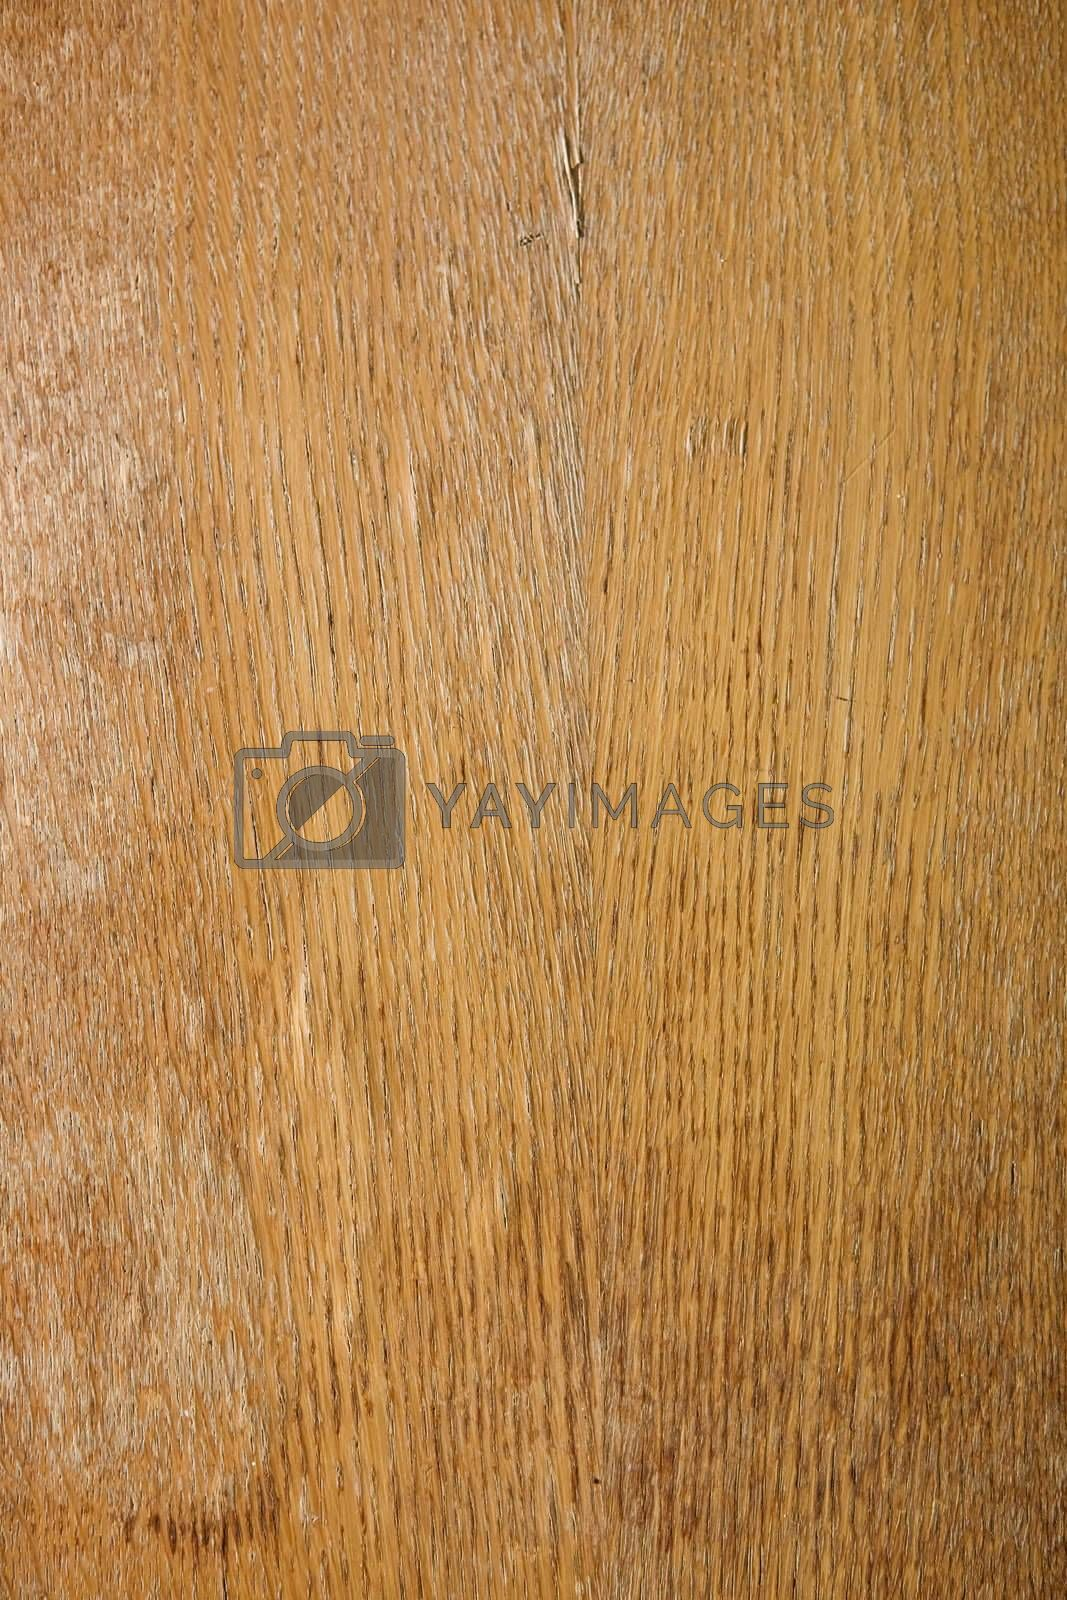 Weathered light brown wood texture background image.